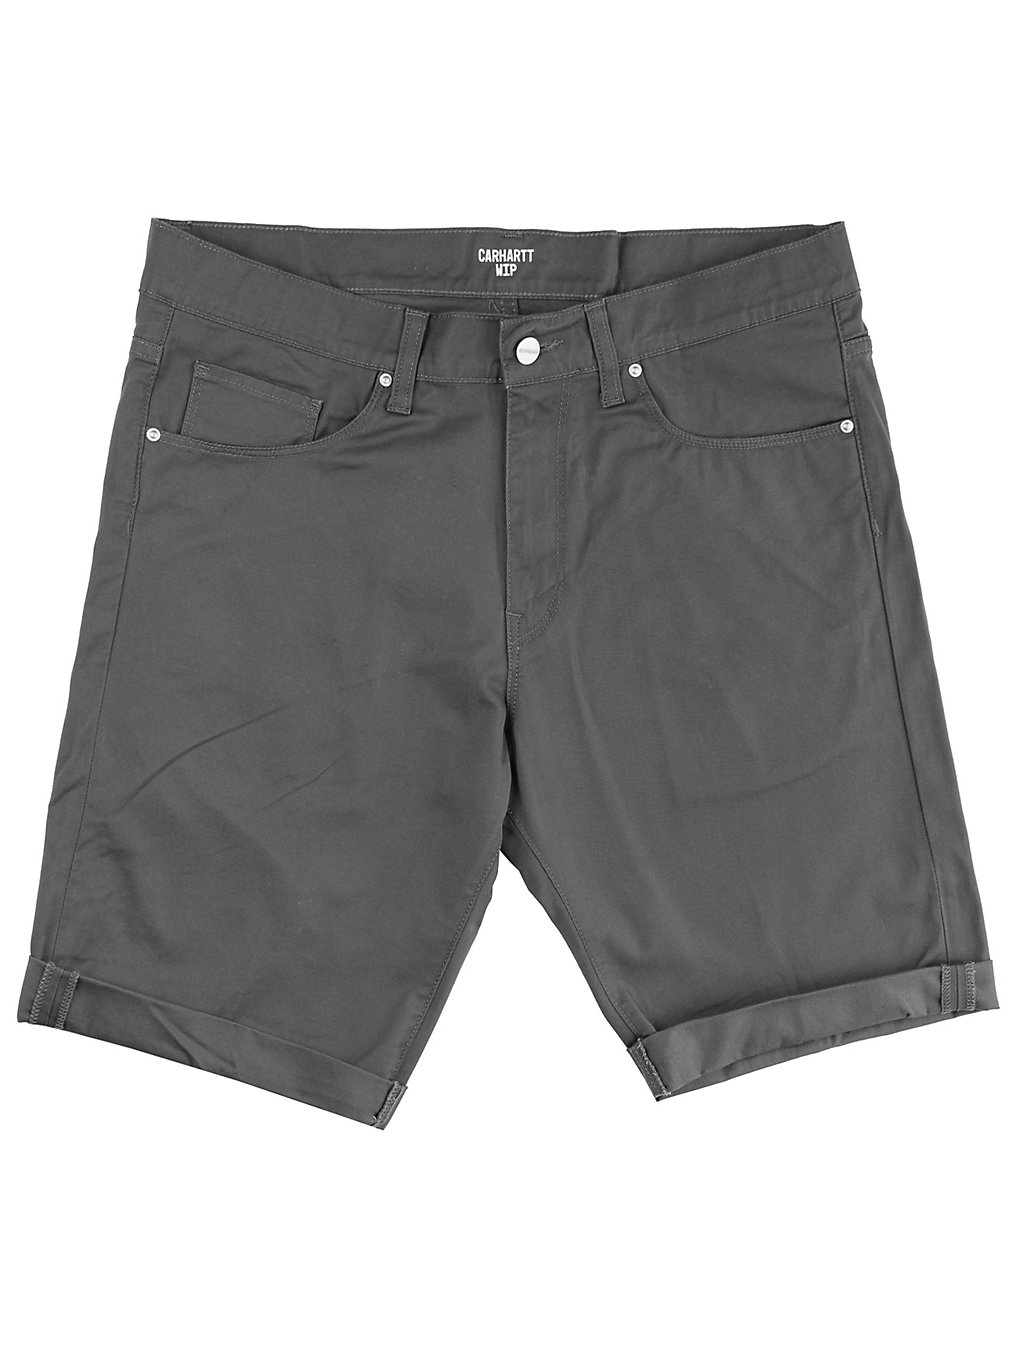 Carhartt WIP Swell Shorts rinsed